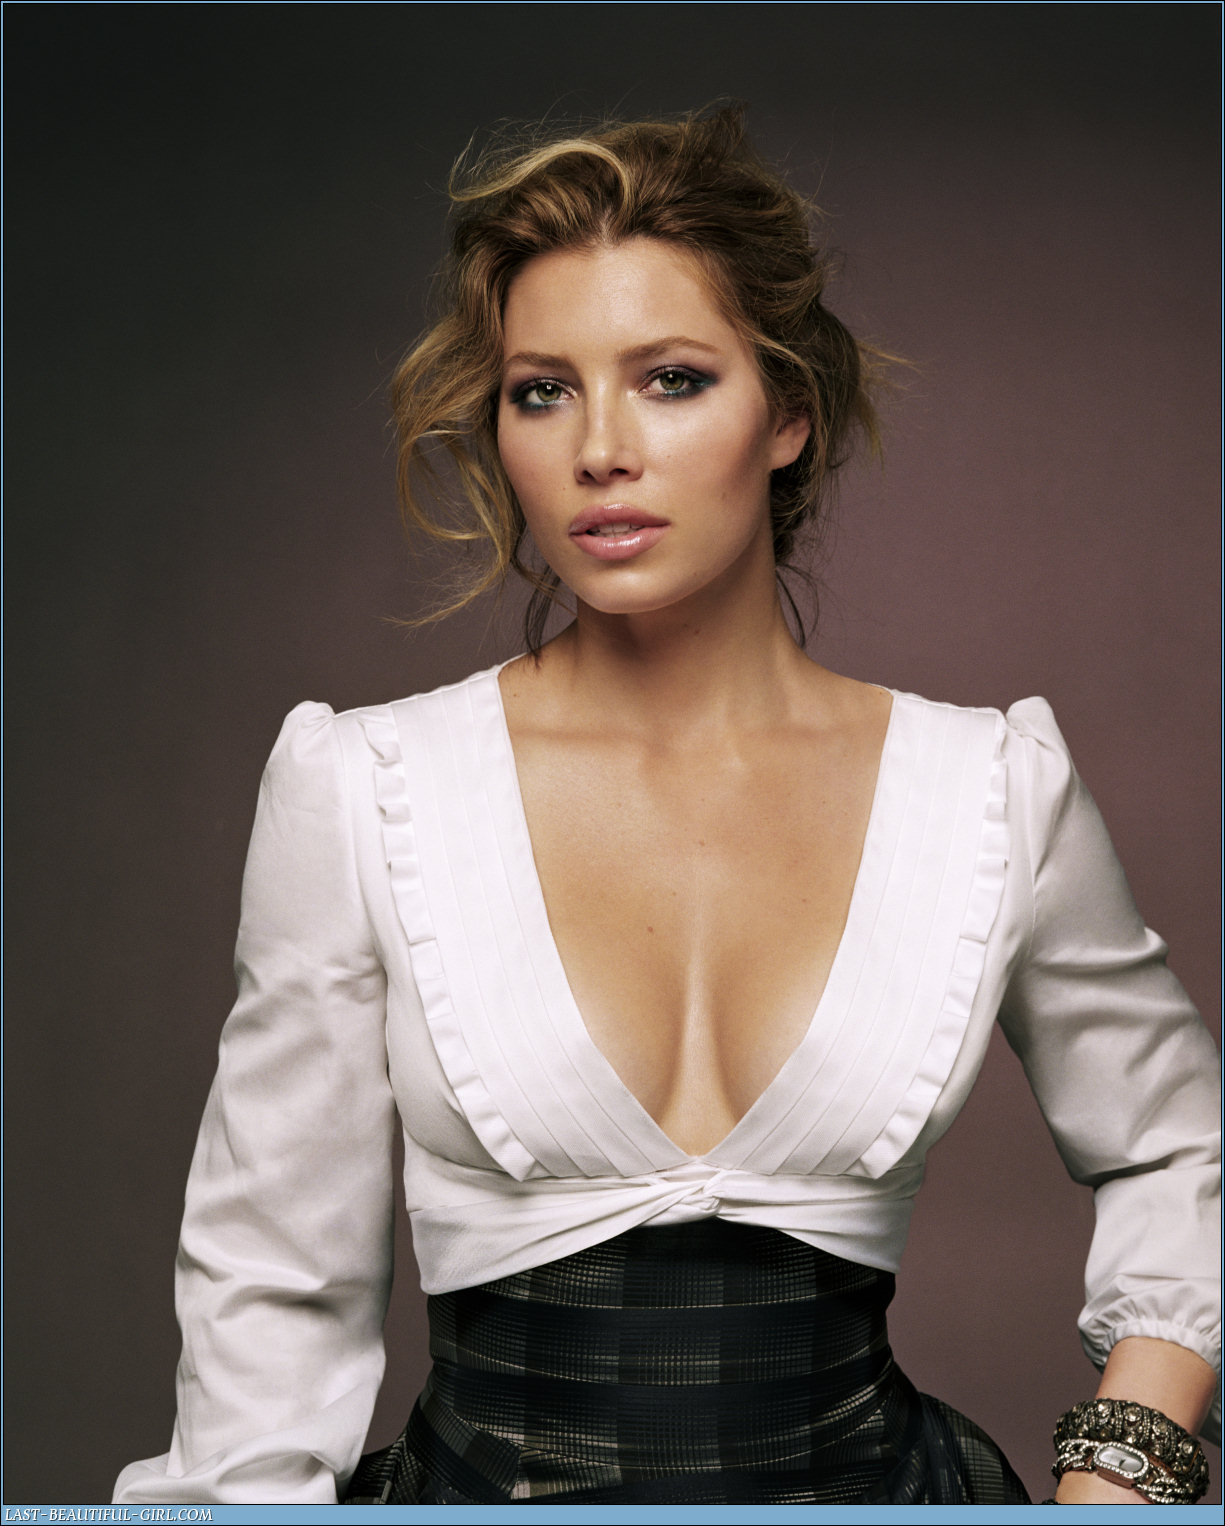 biel women Jessica biel is an american actress and model she is best known for her role as mary camden on '7th heaven' and for her numerous film roles she worked on the wb's '7th heaven' from 1996-2006.